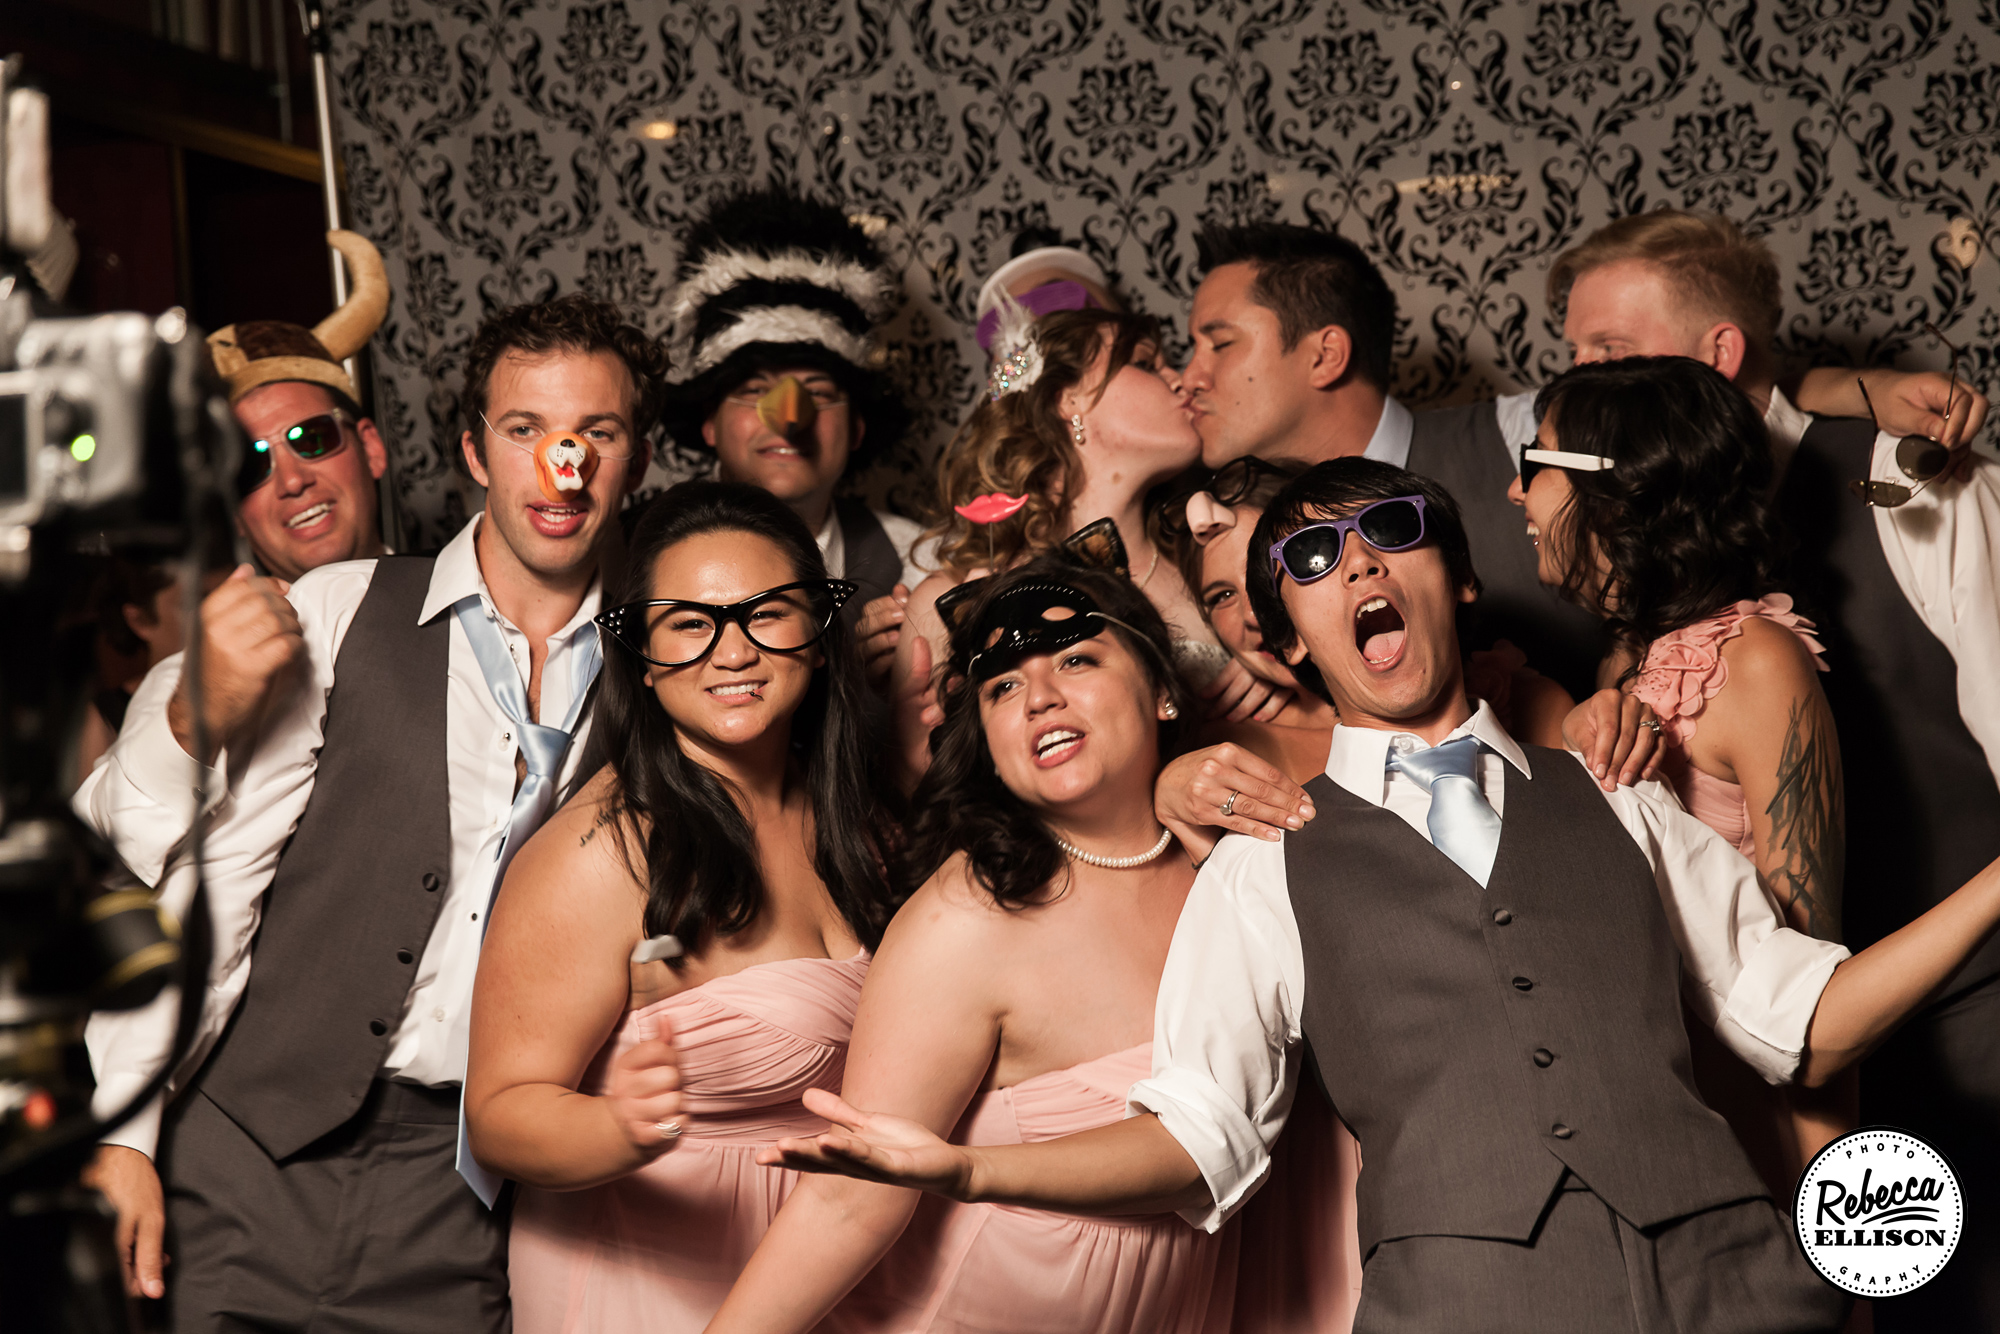 Wedding Party poses at a photo booth with silly props featuring pale pink dresses and grey suits photographed by Seattle wedding Photographer Rebecca Ellison